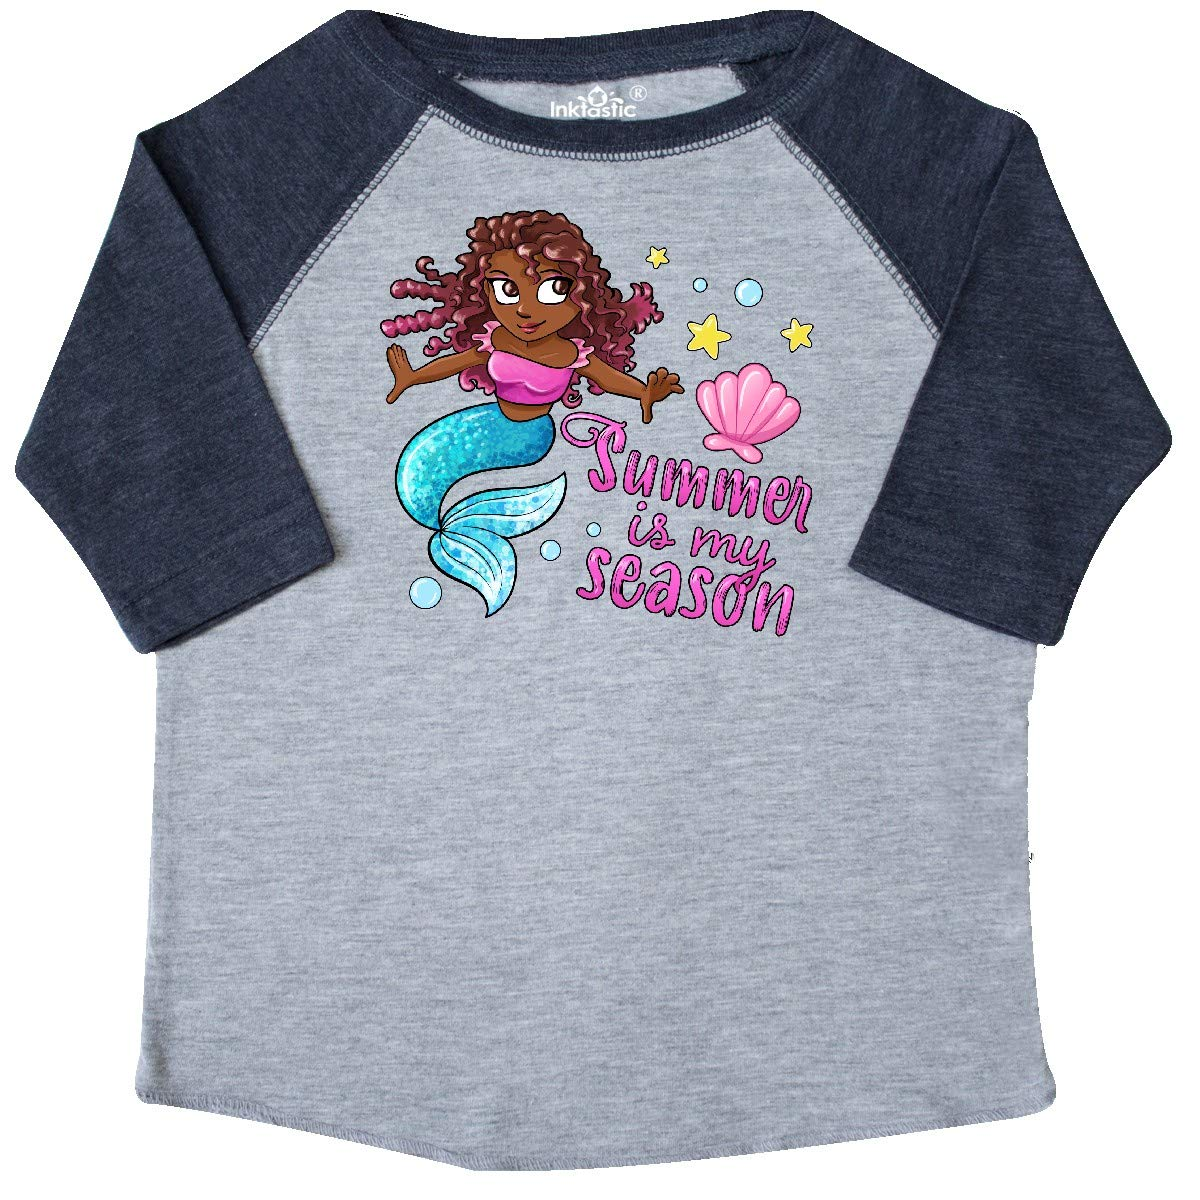 Mermaid with Blue Tail Toddler T-Shirt inktastic Summer is My Season